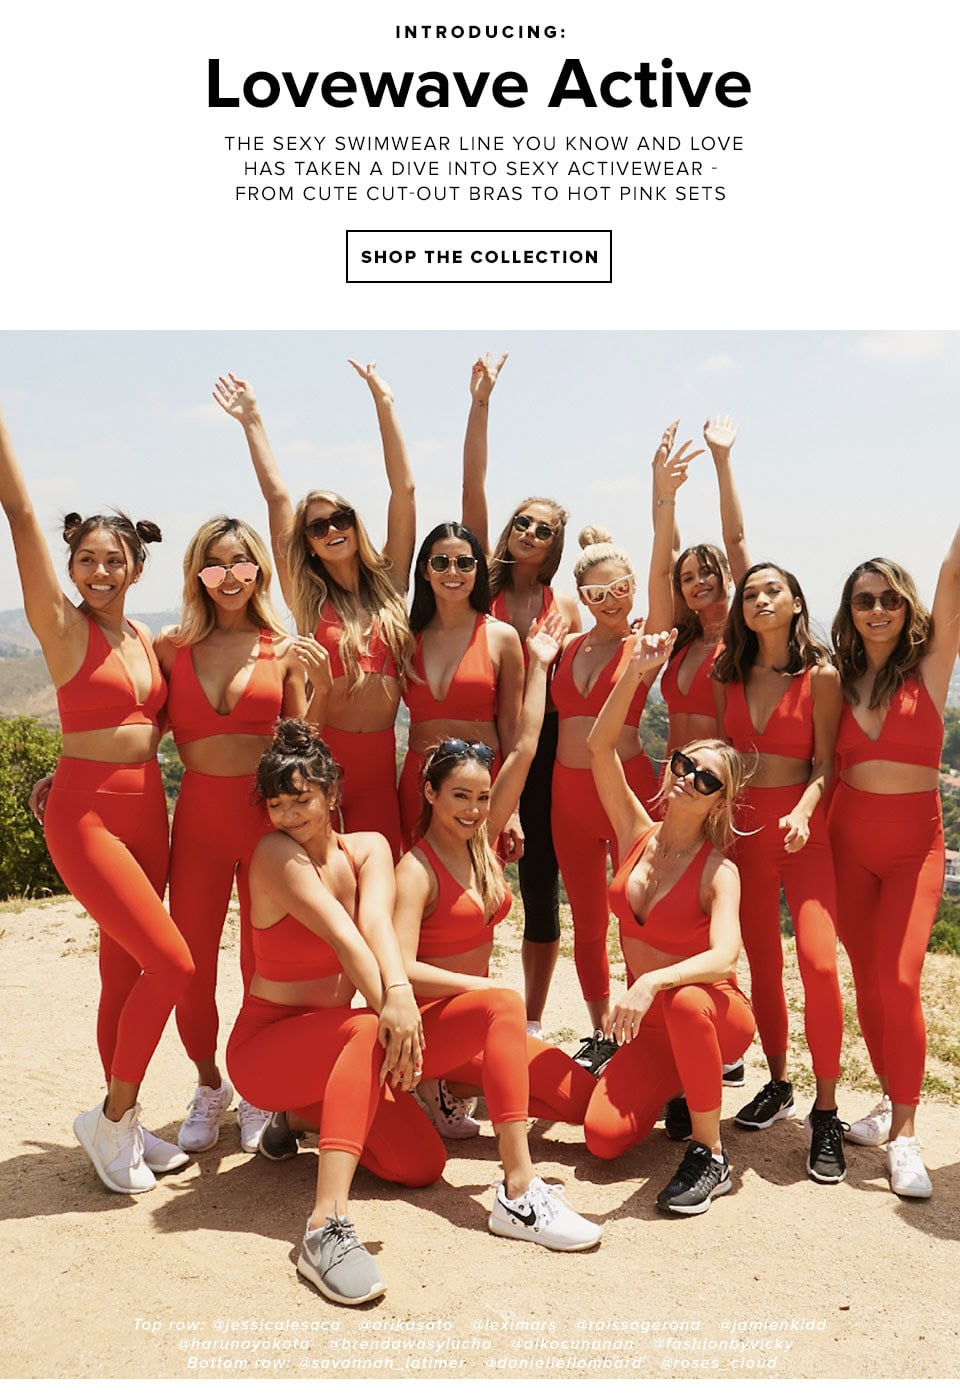 Introducing: Lovewave Active. The sexy swimwear line you know and love has taken a dive into sexy activewear - from cute cut-out bras to hot pink sets. Shop The Collection.